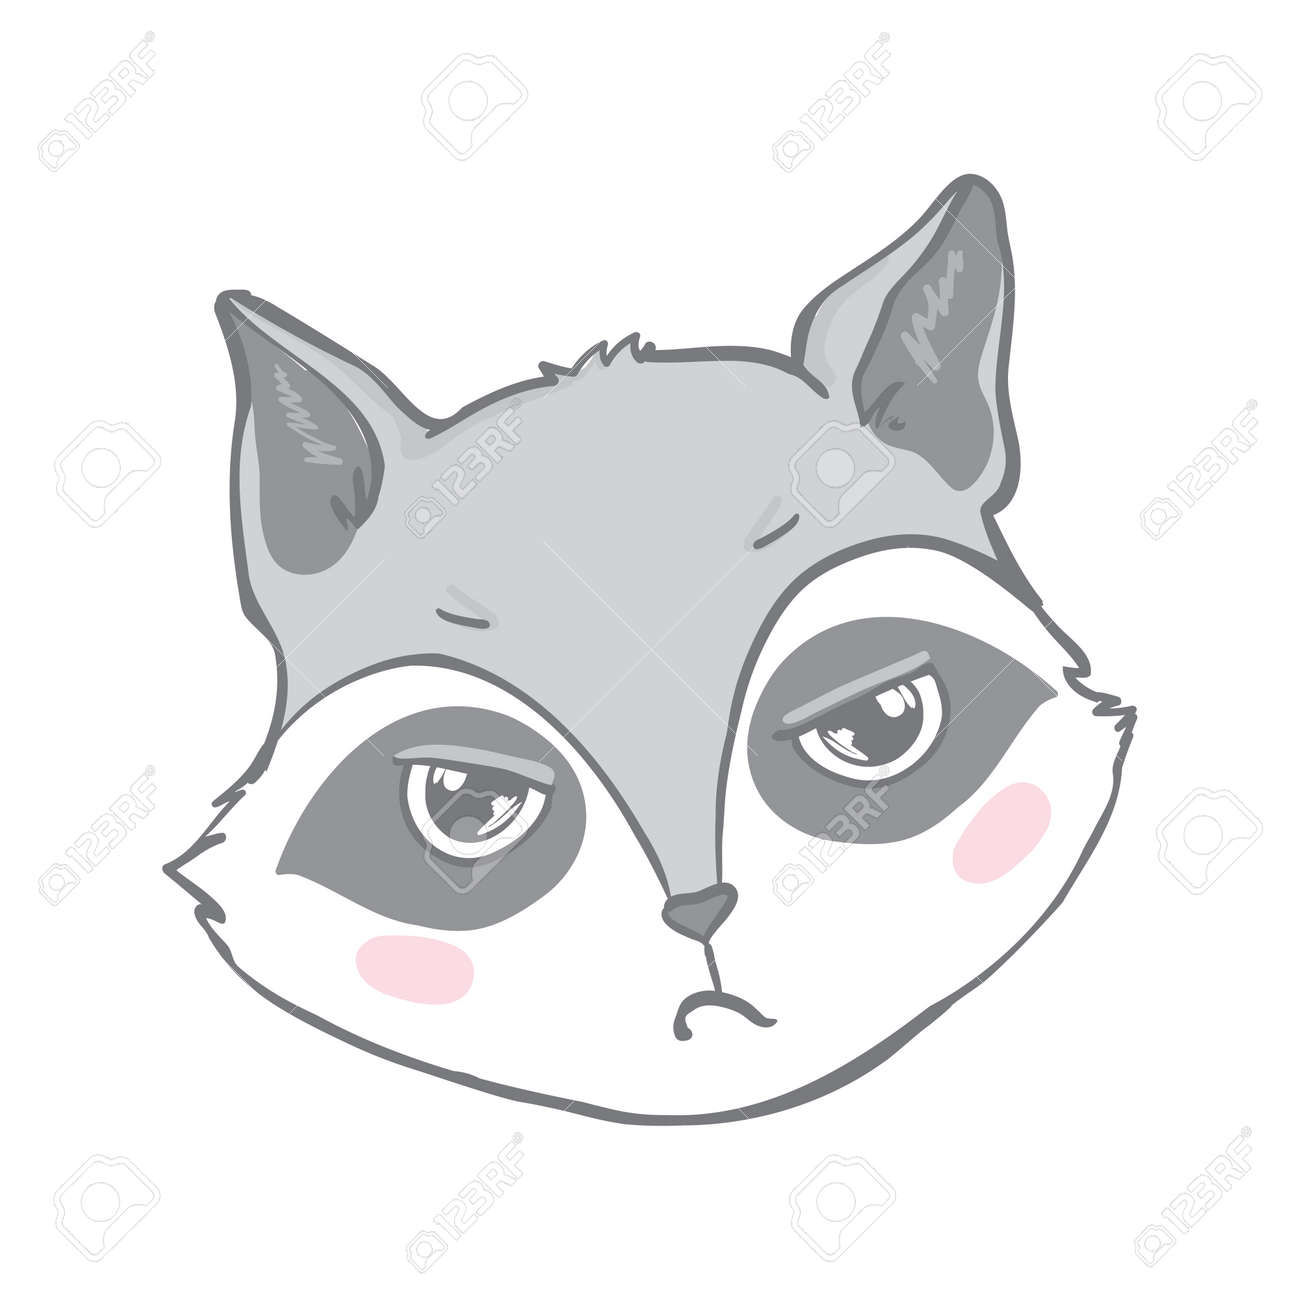 T shirt Print Design for Kids with Little Cute Raccoon. Scandinavian print or poster for Nursery Design, Baby shower Greeting Card. Cartoon Animal vector illustration. - 168290777